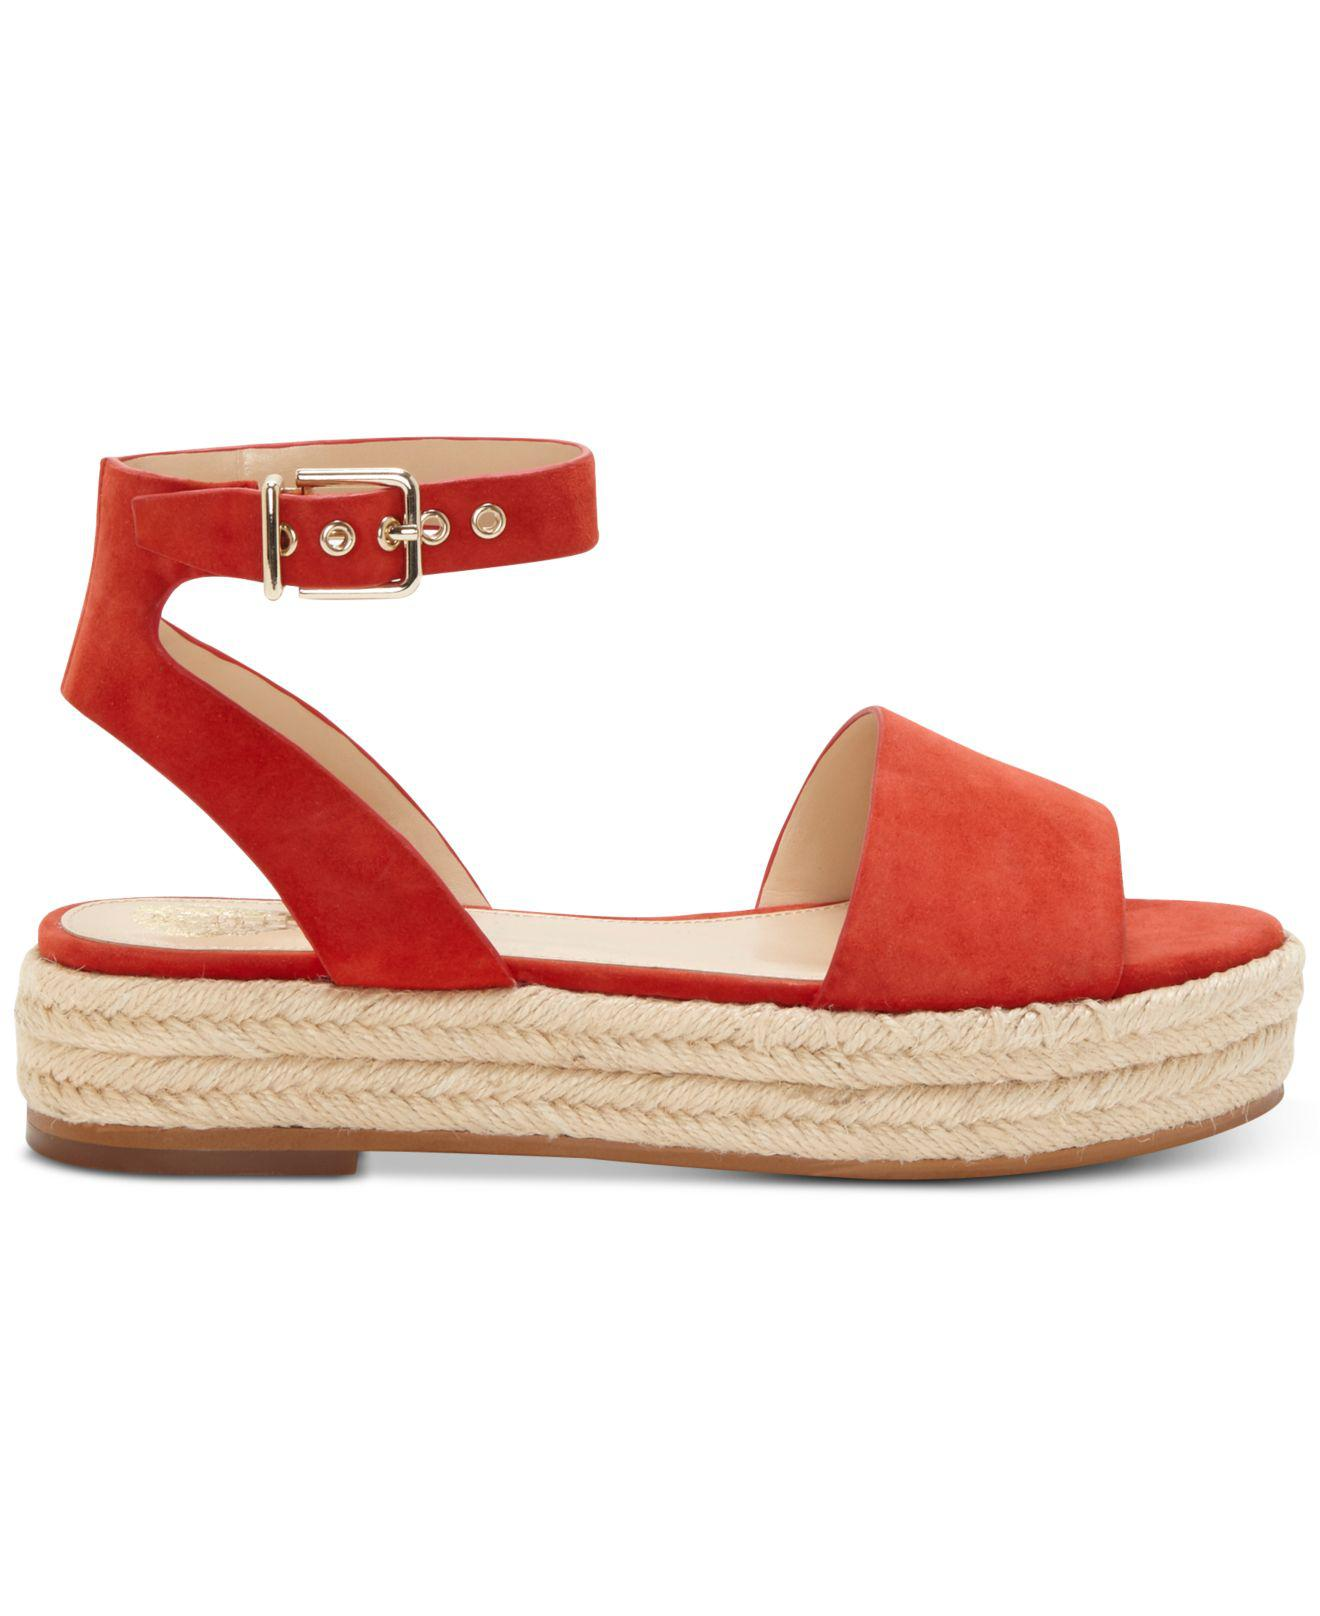 0629e53a29 Vince Camuto Kathalia Espadrille Wedge Sandal in Red - Lyst